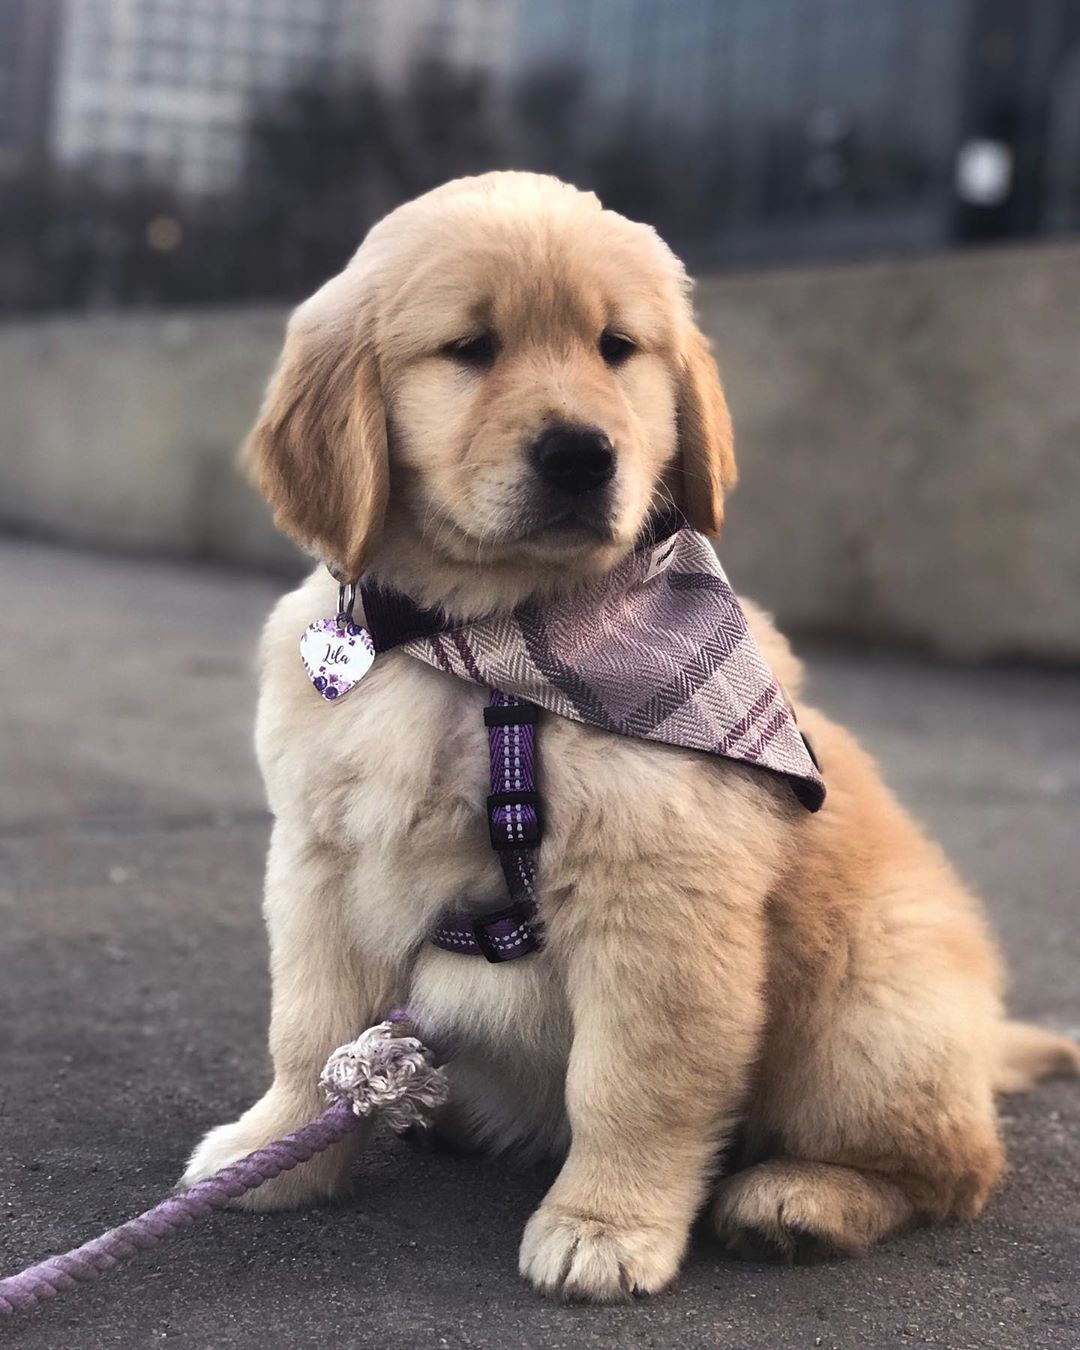 Lila The Golden Retriever On Instagram When You Re Very Seriously Looking Forward To The Weekend Cute Baby Animals Cute Animal Photos Cute Puppy Breeds